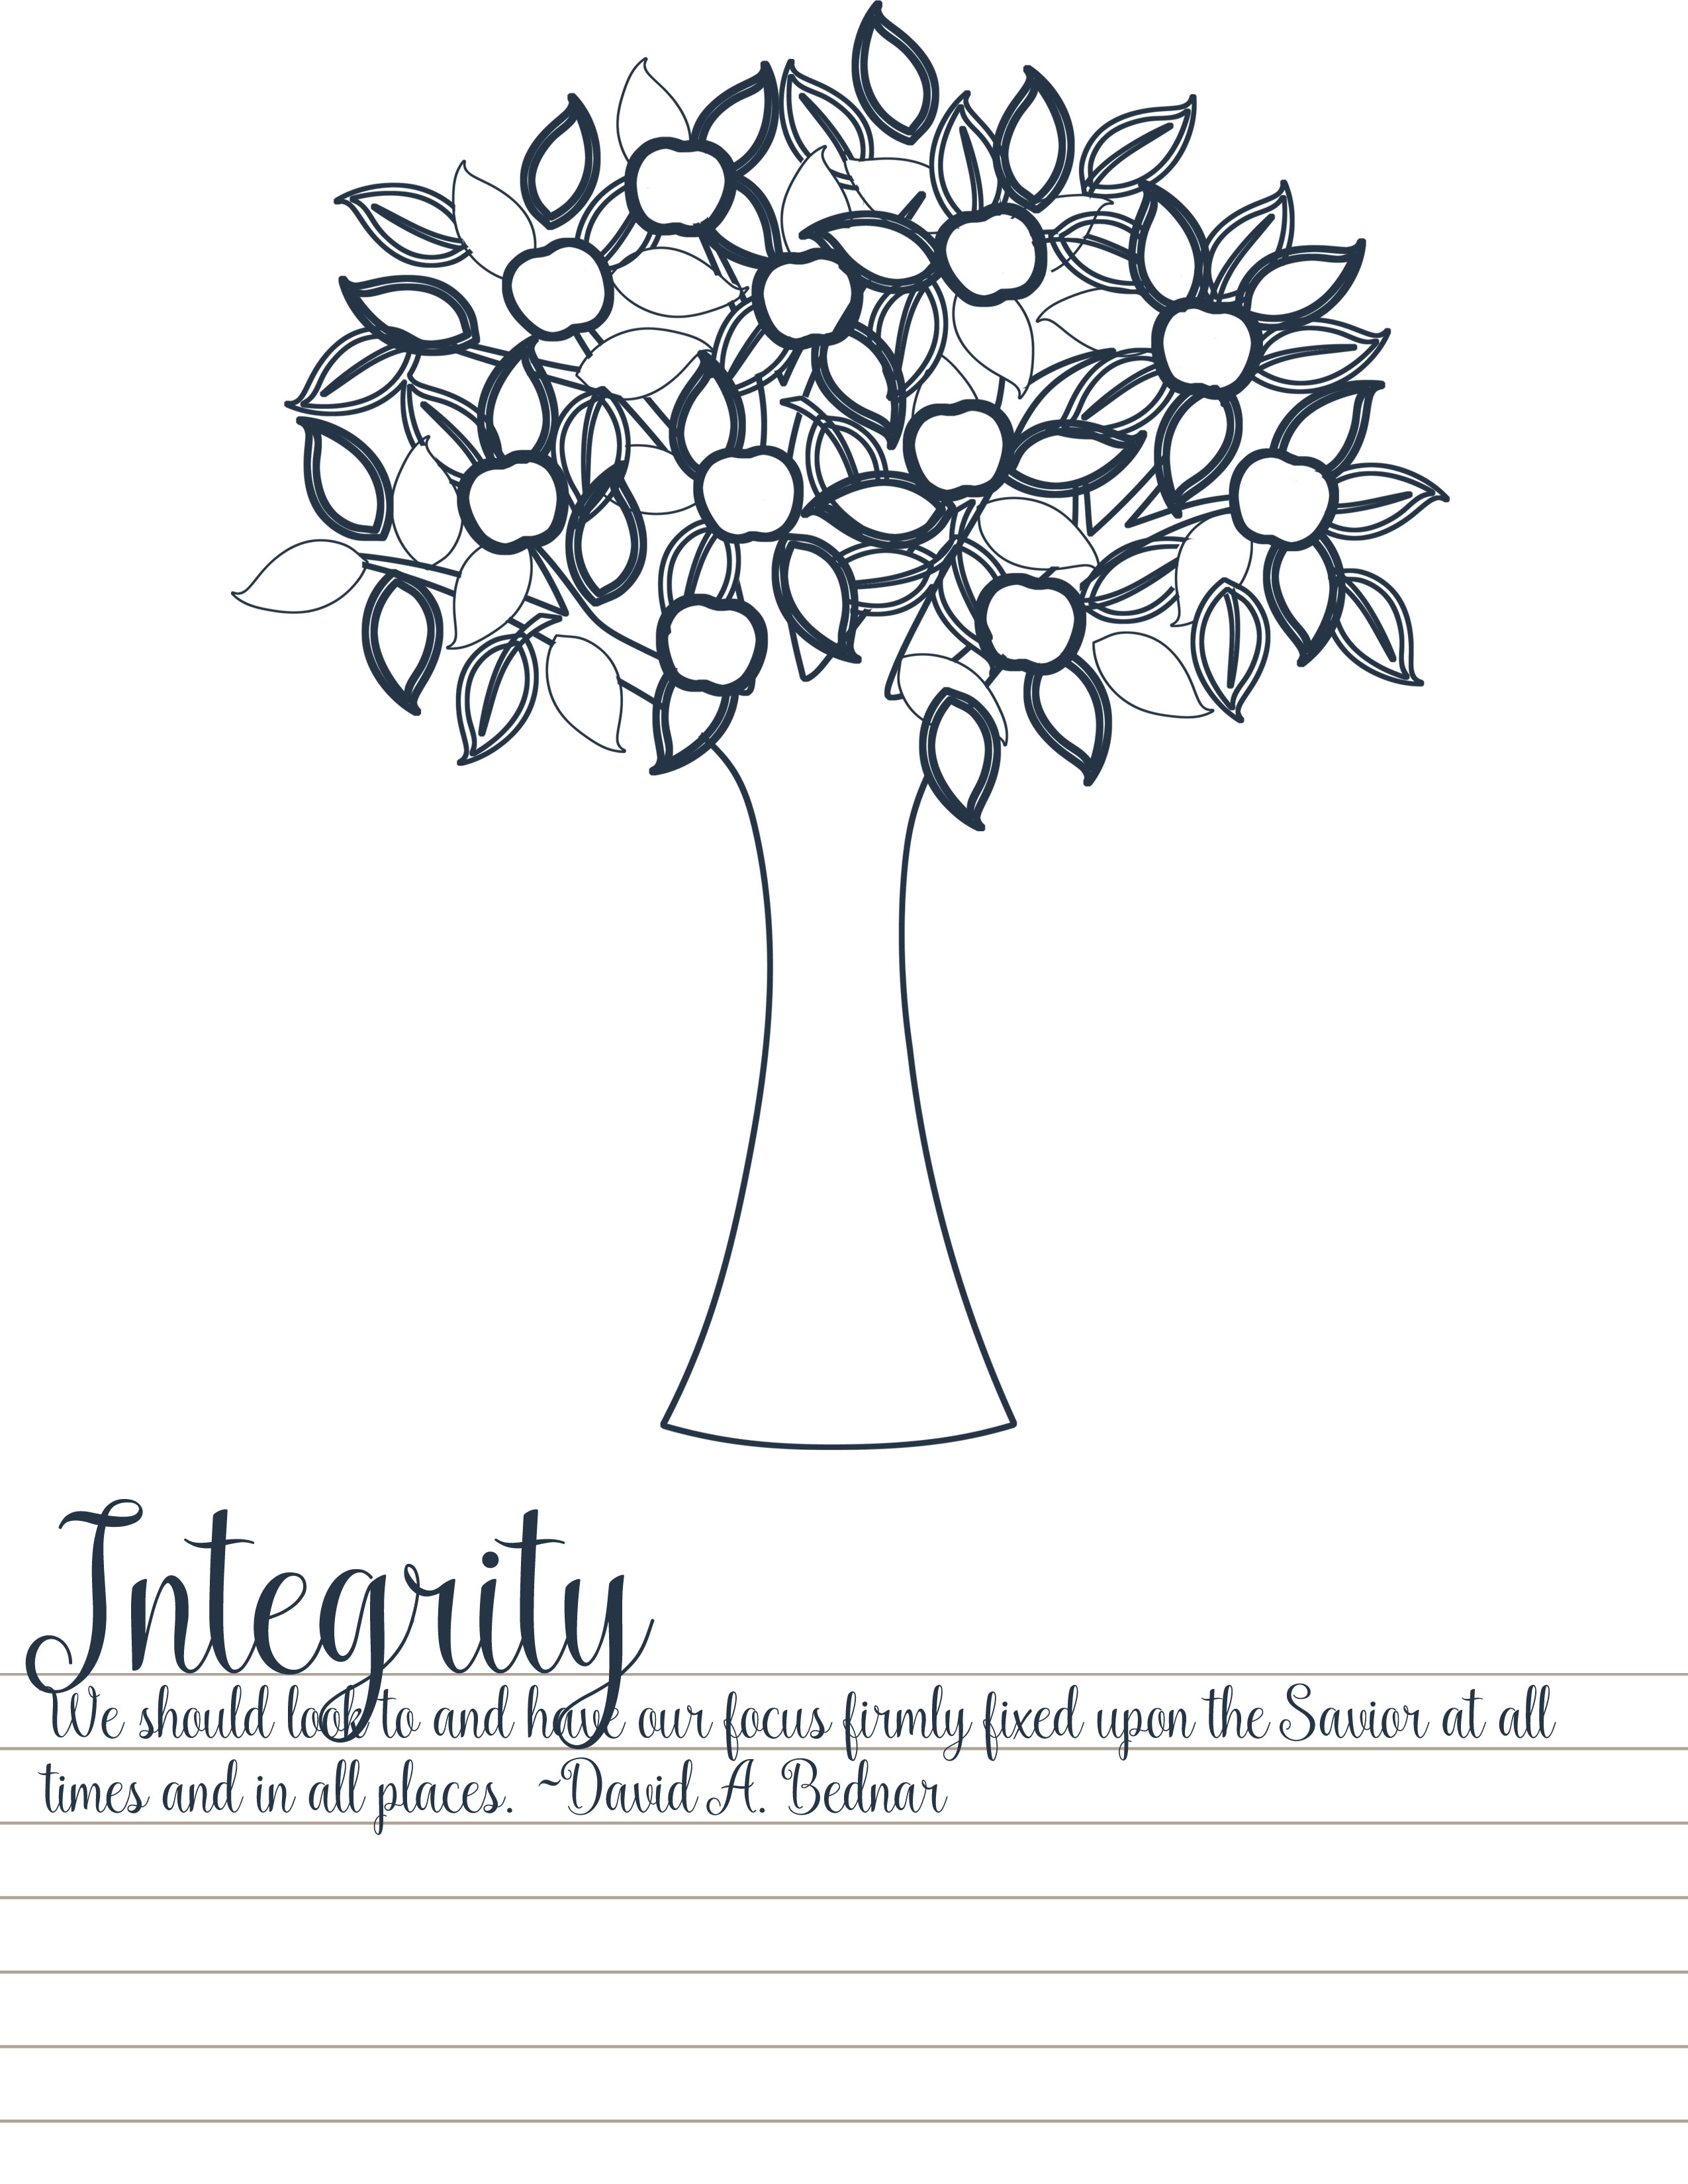 Integrity Tree Coloring Page Your Everyday Family